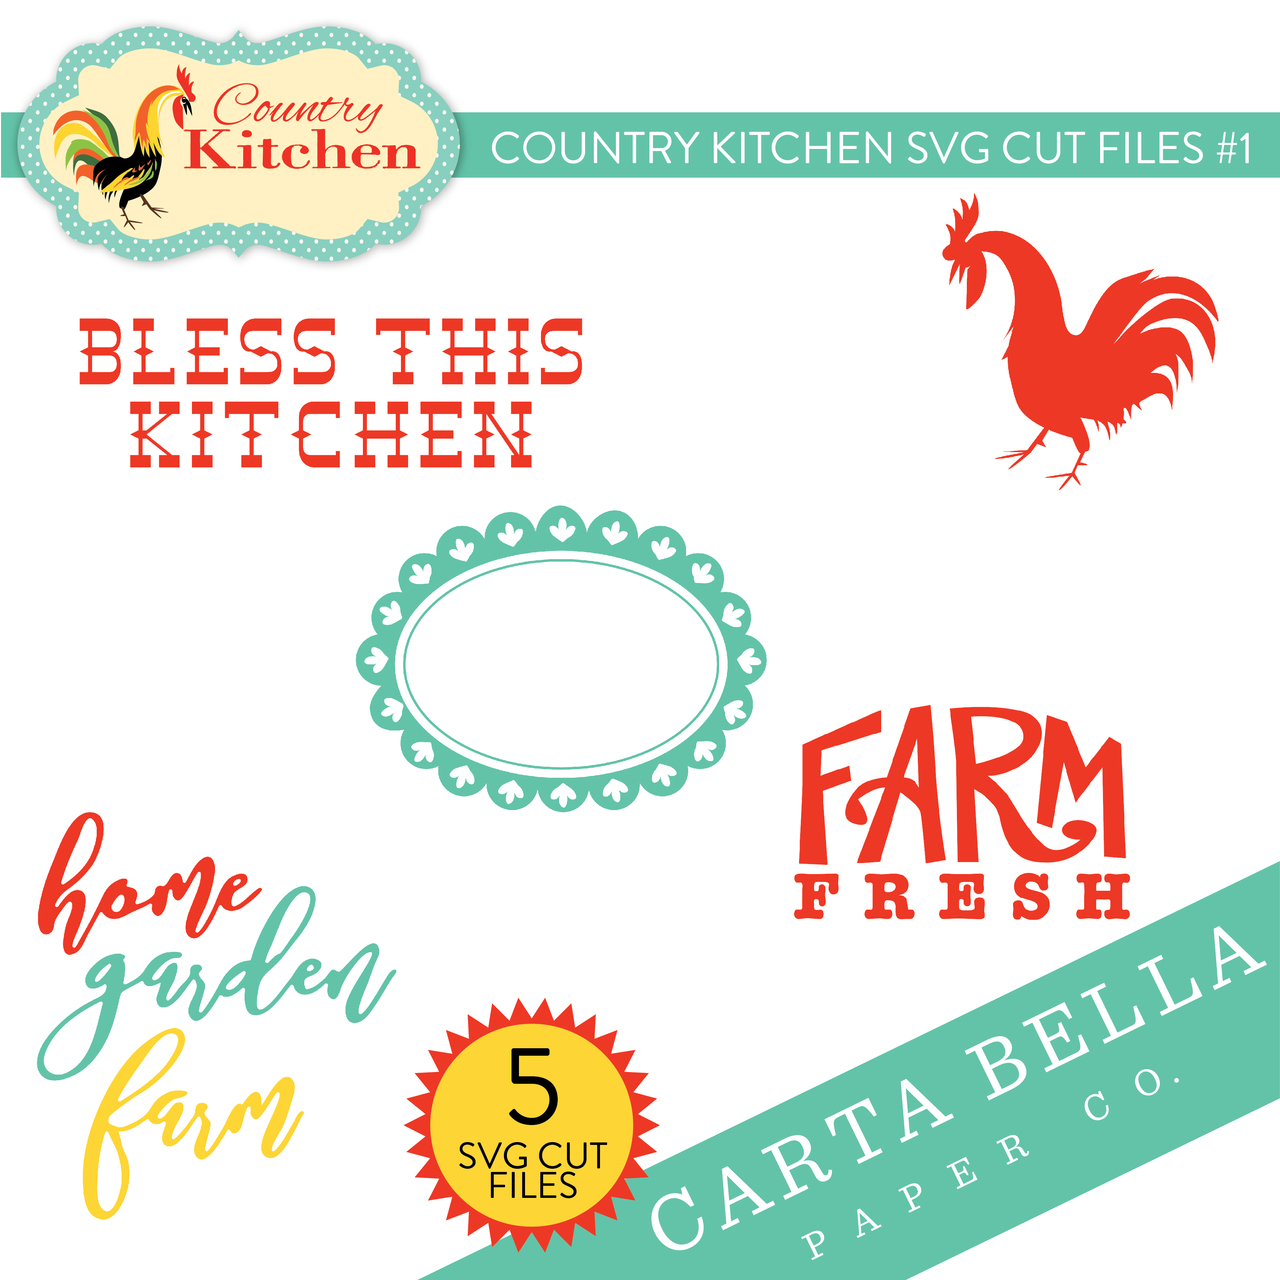 Country Kitchen SVG Cut Files #1